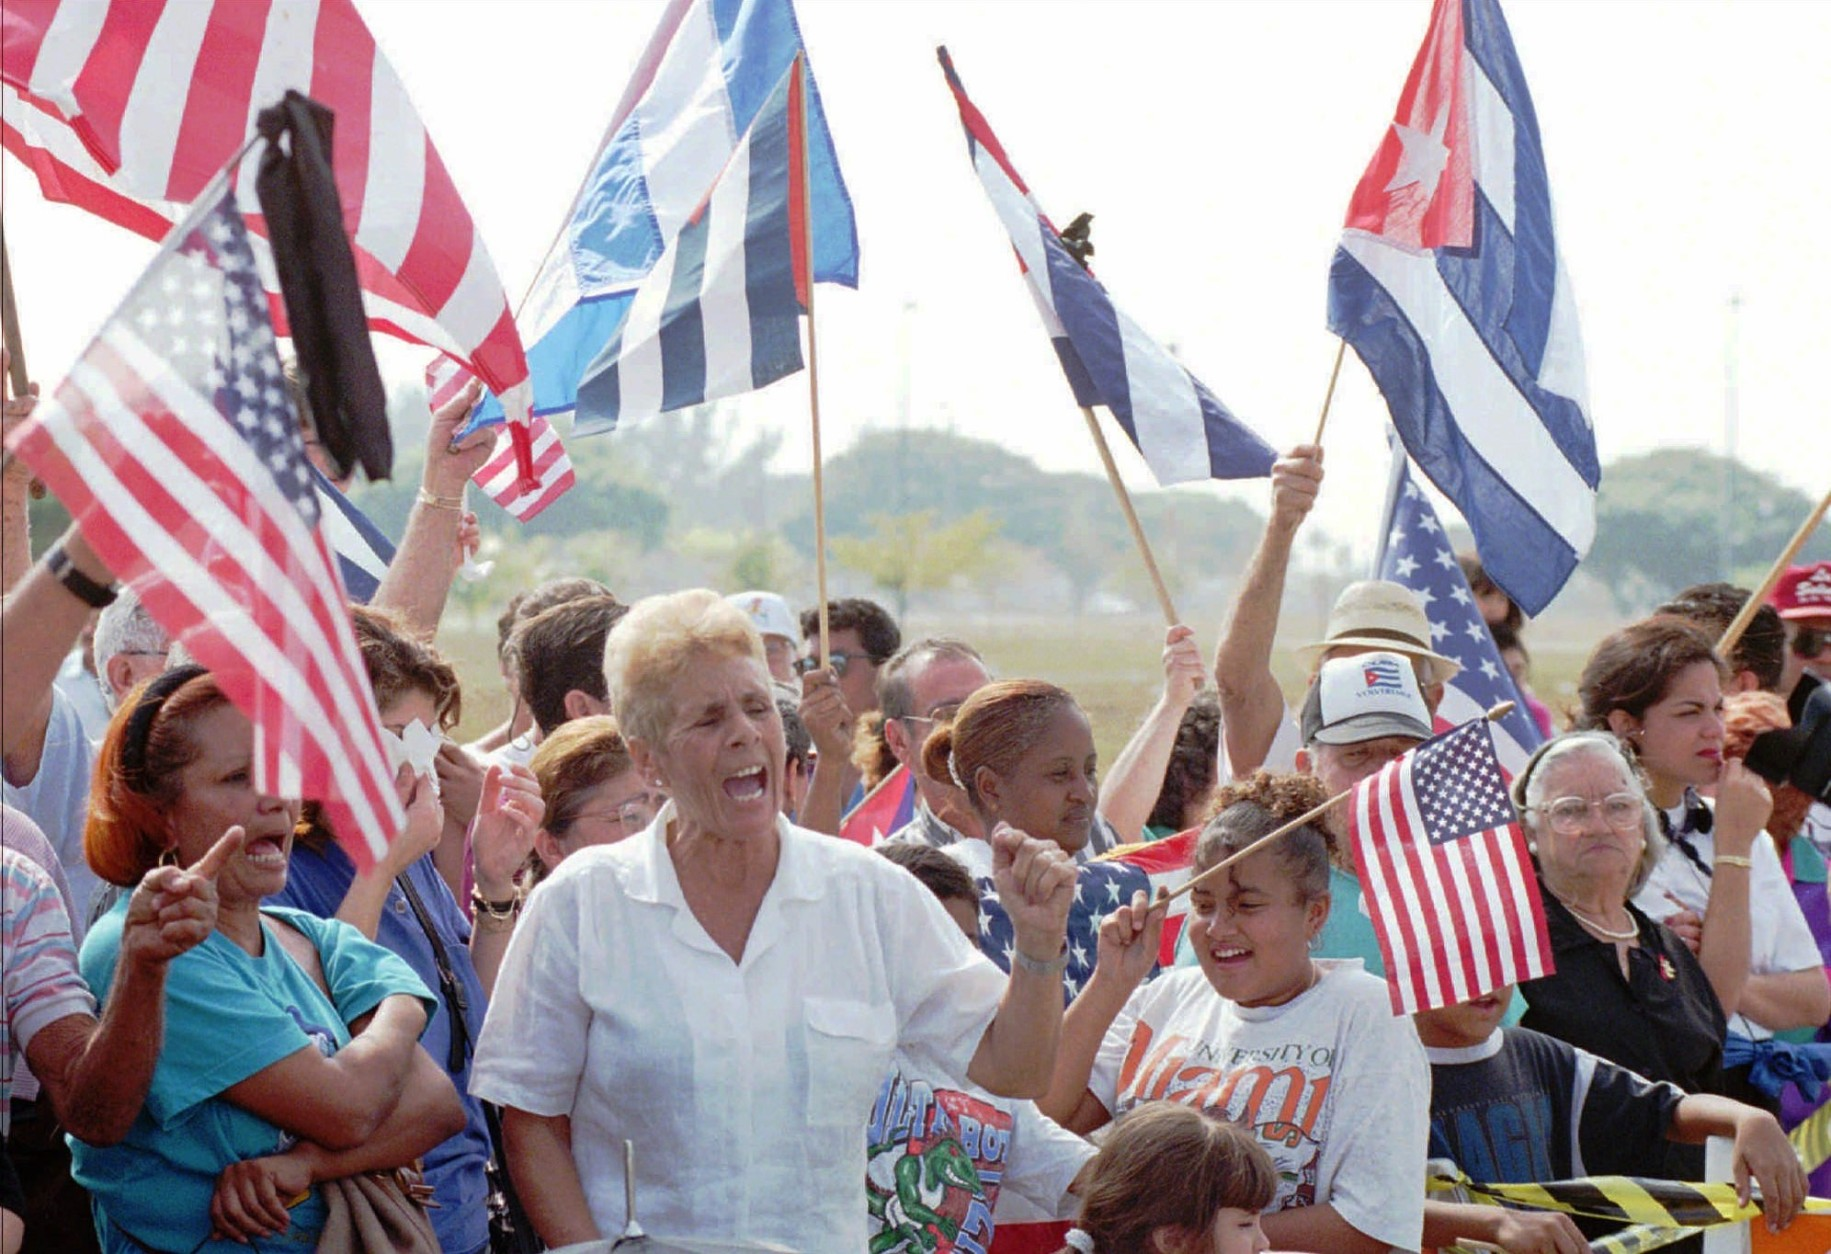 Anti-Castro demonstrators shout for the liberation of Cuba at the Opa-locka, Fla., airport, Sunday, Feb. 25, 1996 where they gathered to show their outrage at the shooting down of two Brothers to the Rescue aircraft Saturday. (AP Photo/Tannen Maury)